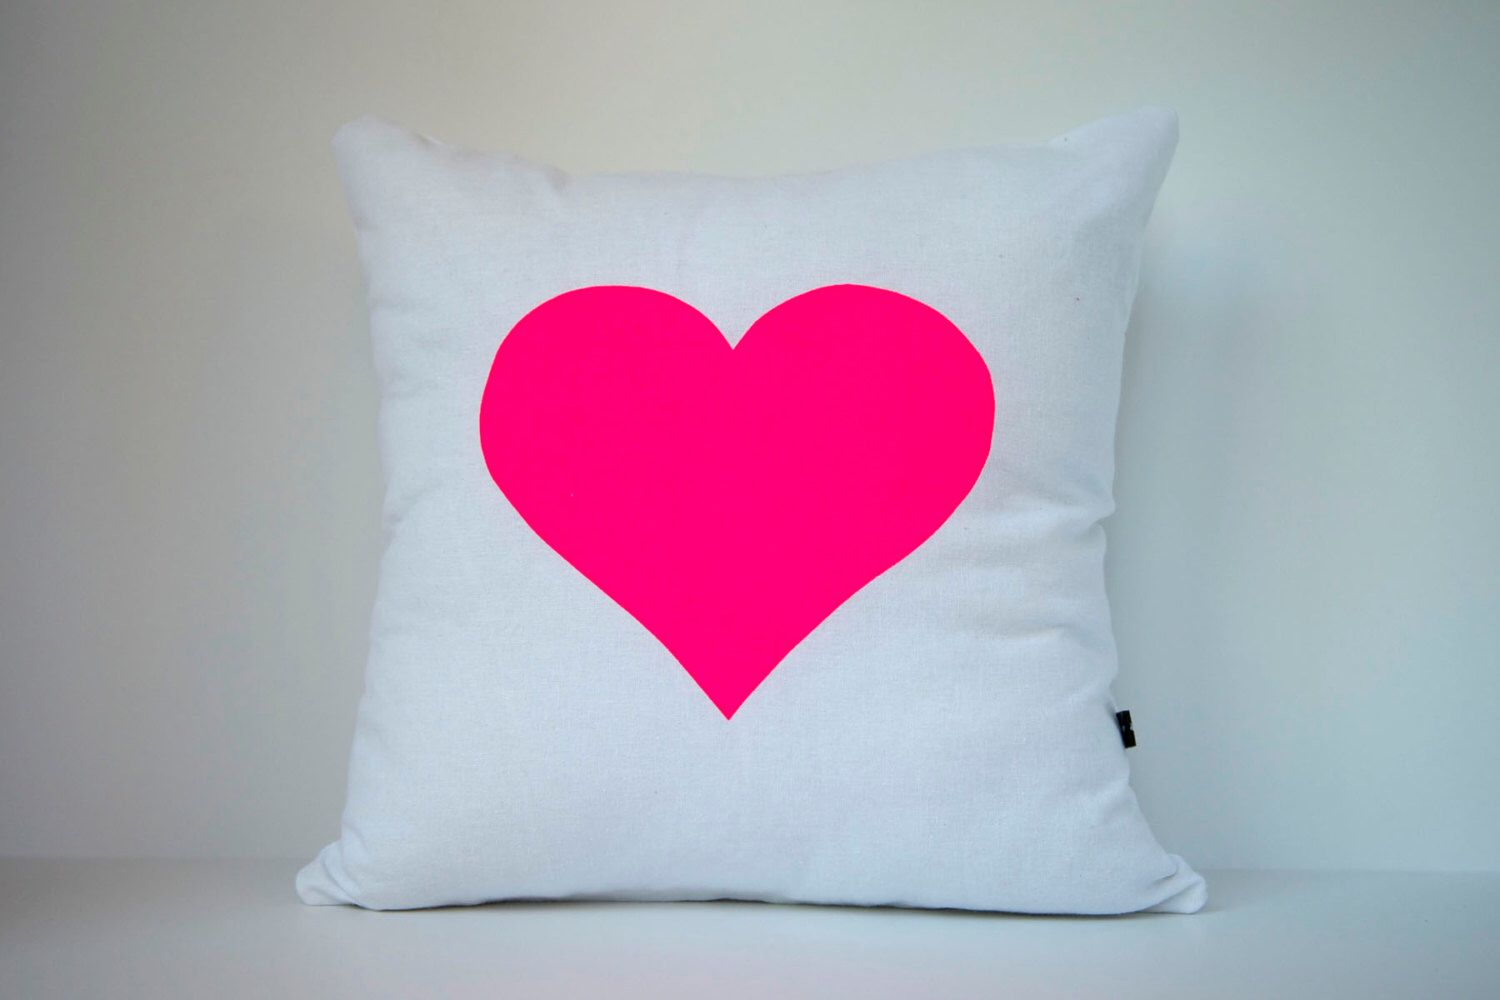 Heart in Neon Pink on White - Hand Printed Cushion Cover - Linen Cotton - 40cm x 40cm by bobbyandfaith on Etsy (null)